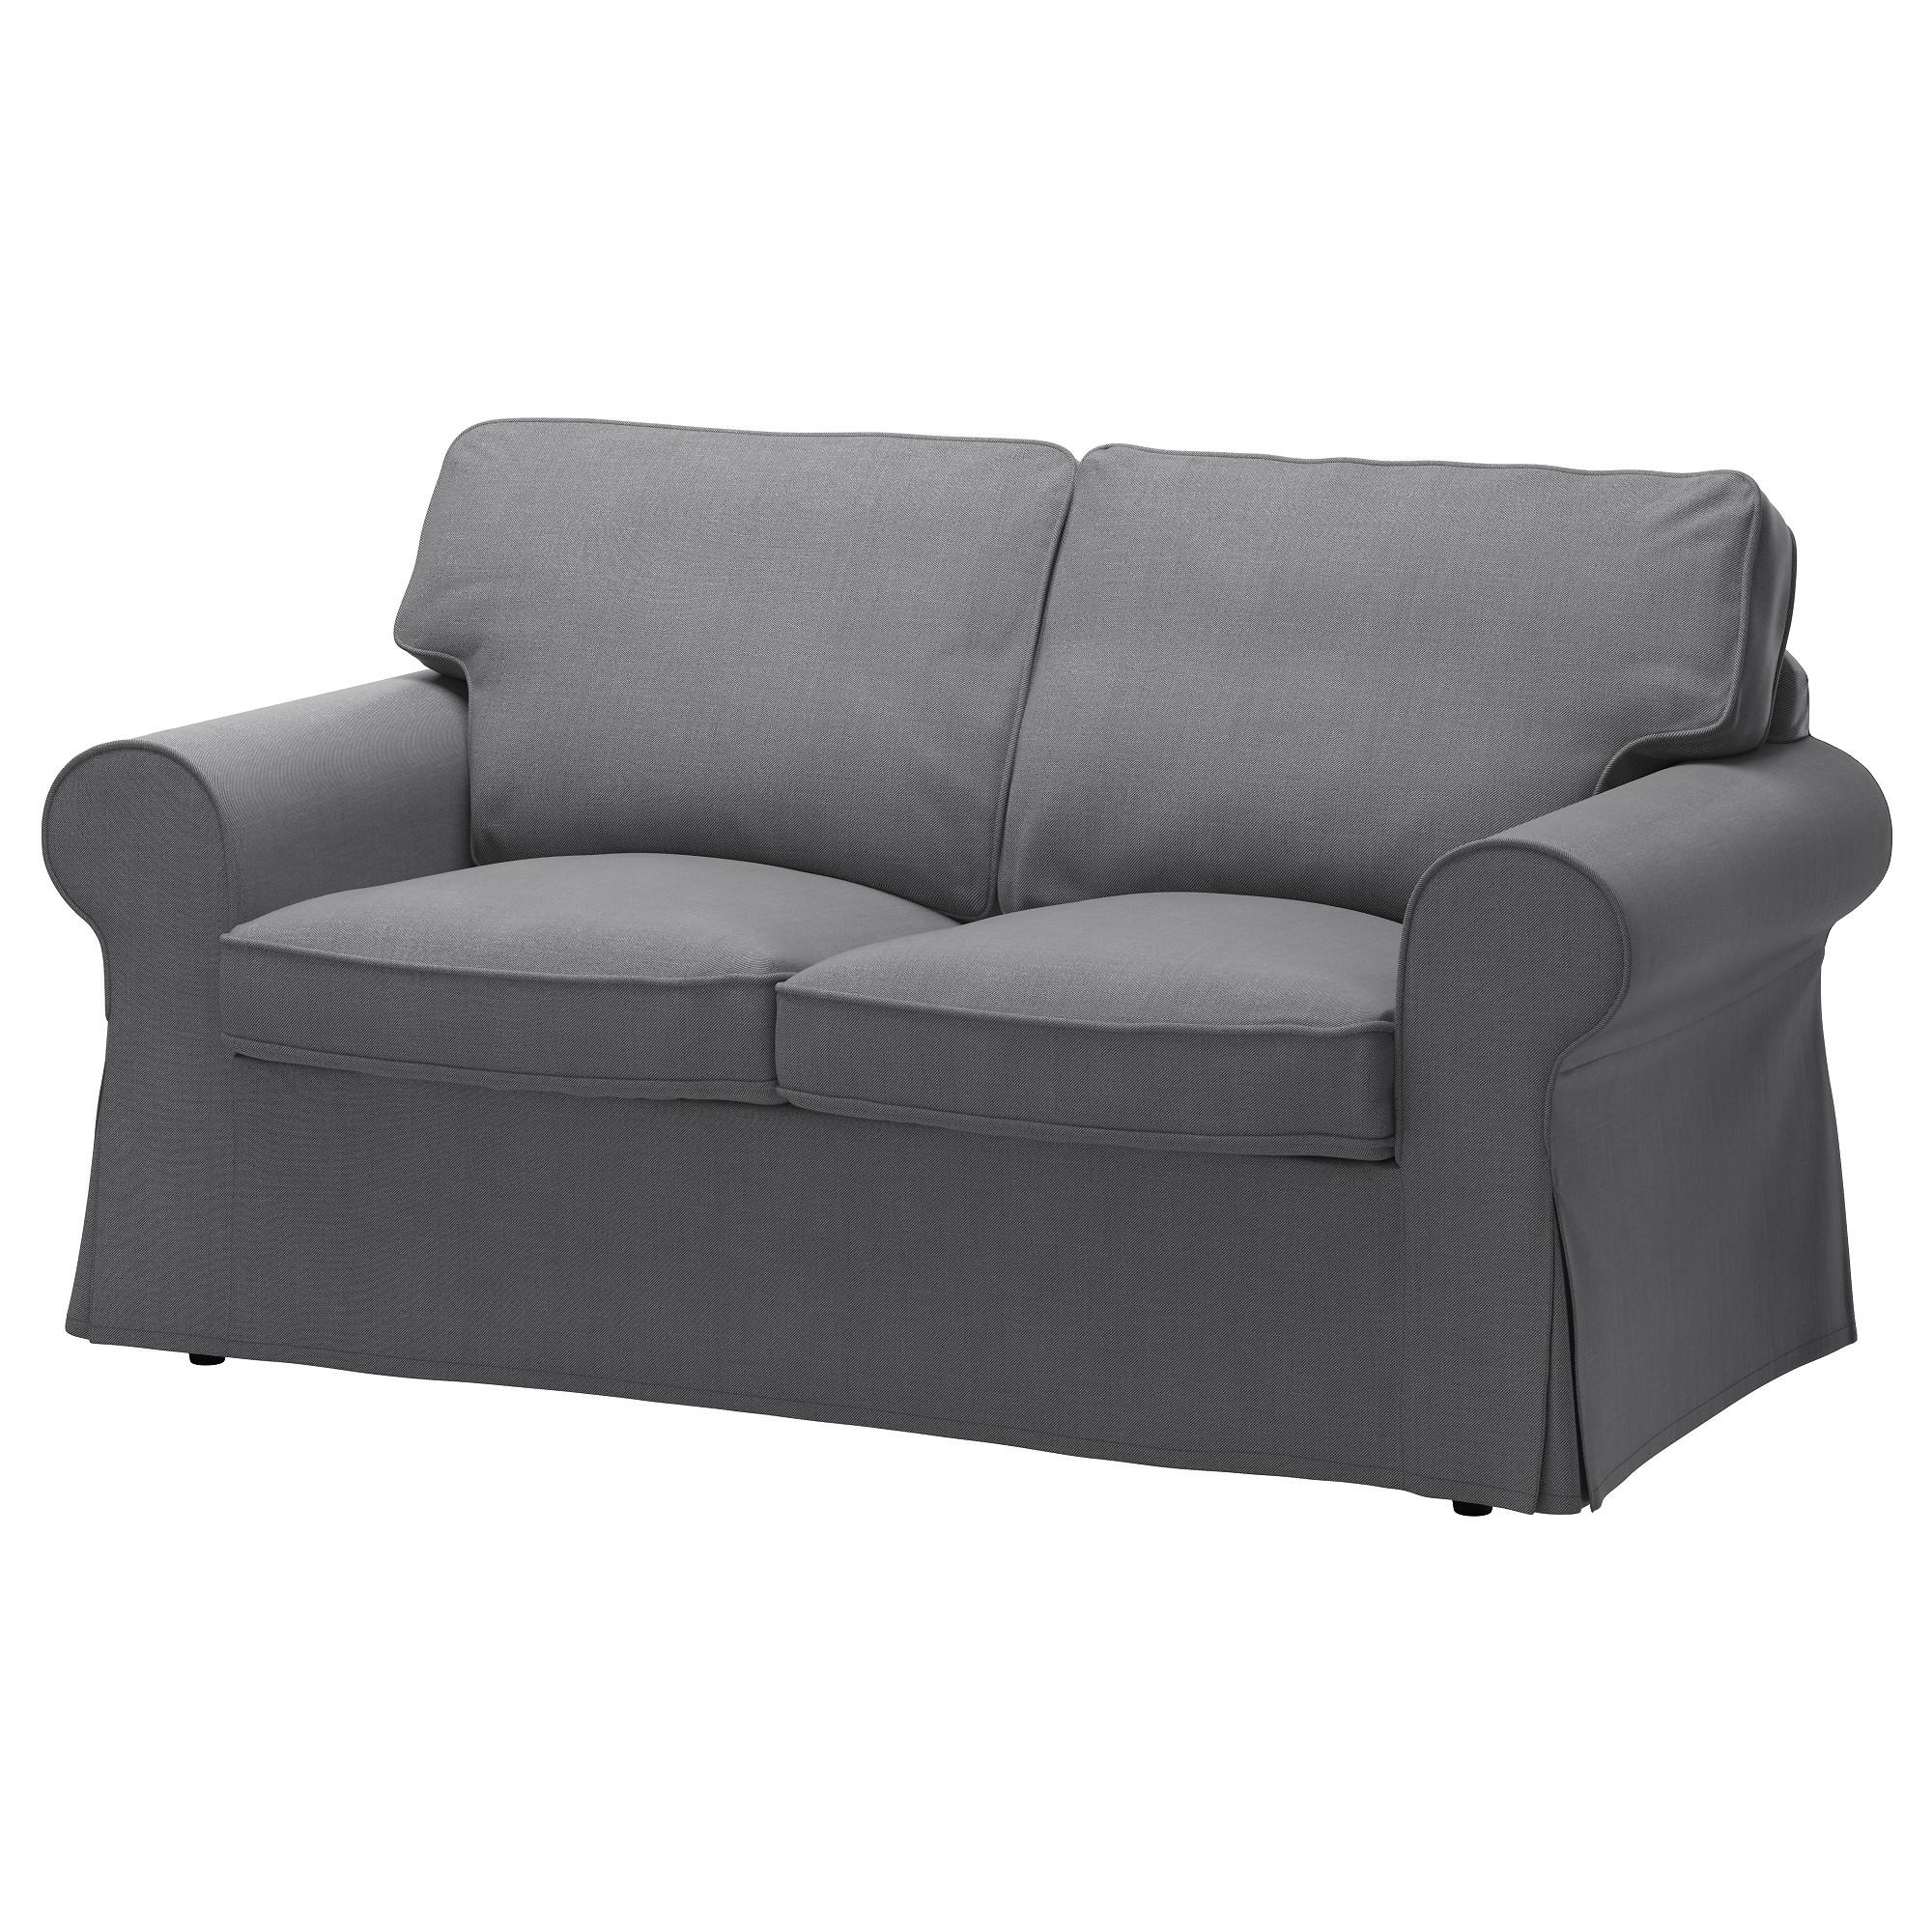 Ektorp – Ikea Regarding Sofas With Removable Covers (View 4 of 20)